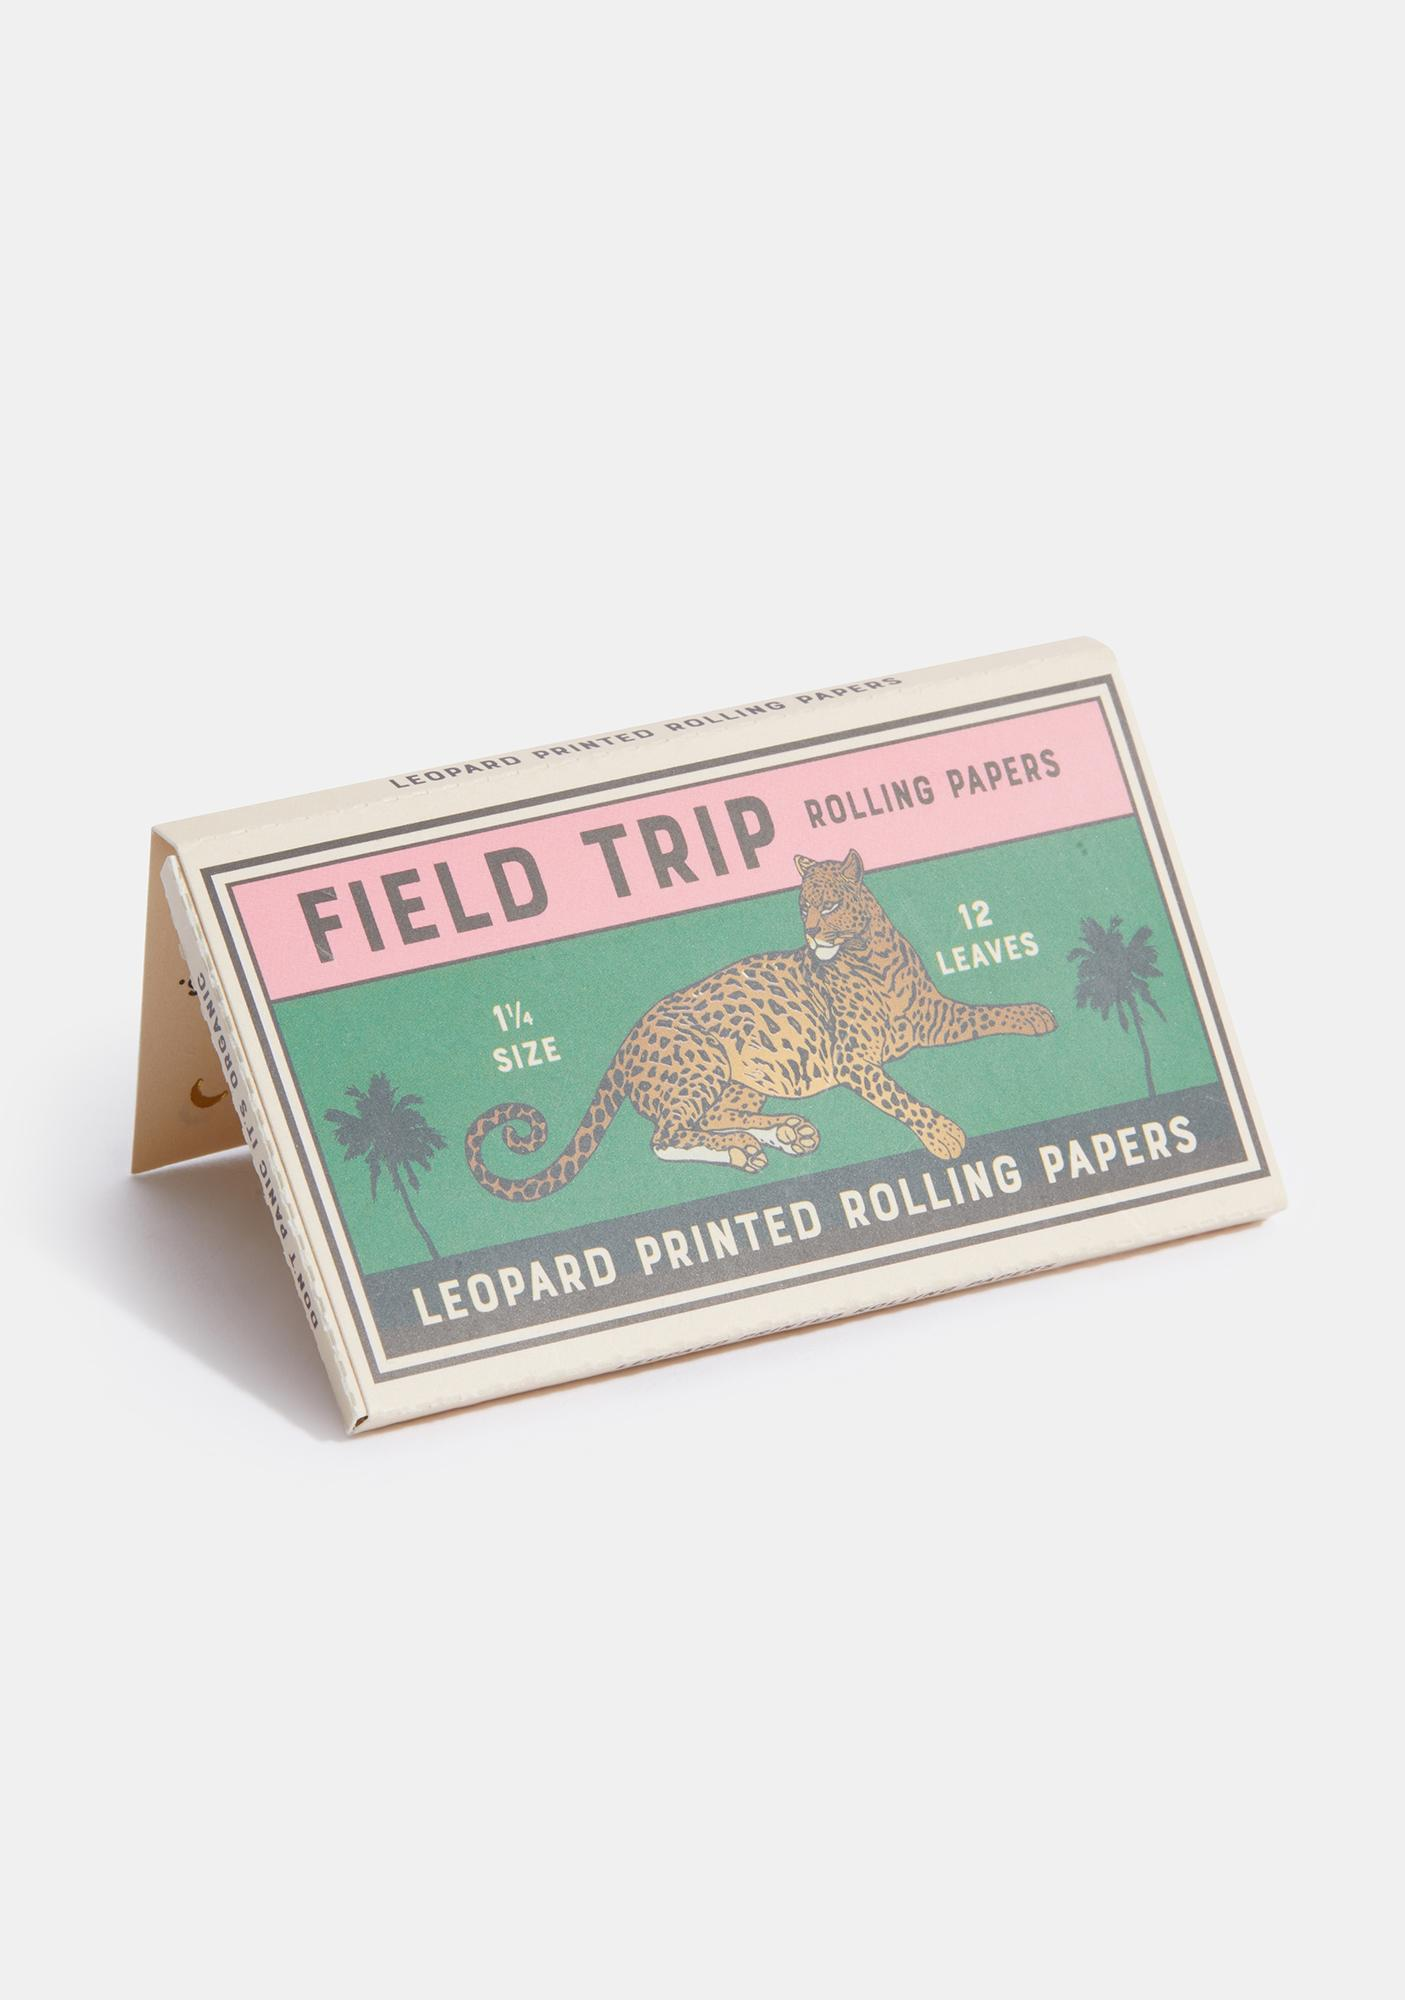 Field Trip Rolling Papers Leopard Printed Rolling Papers